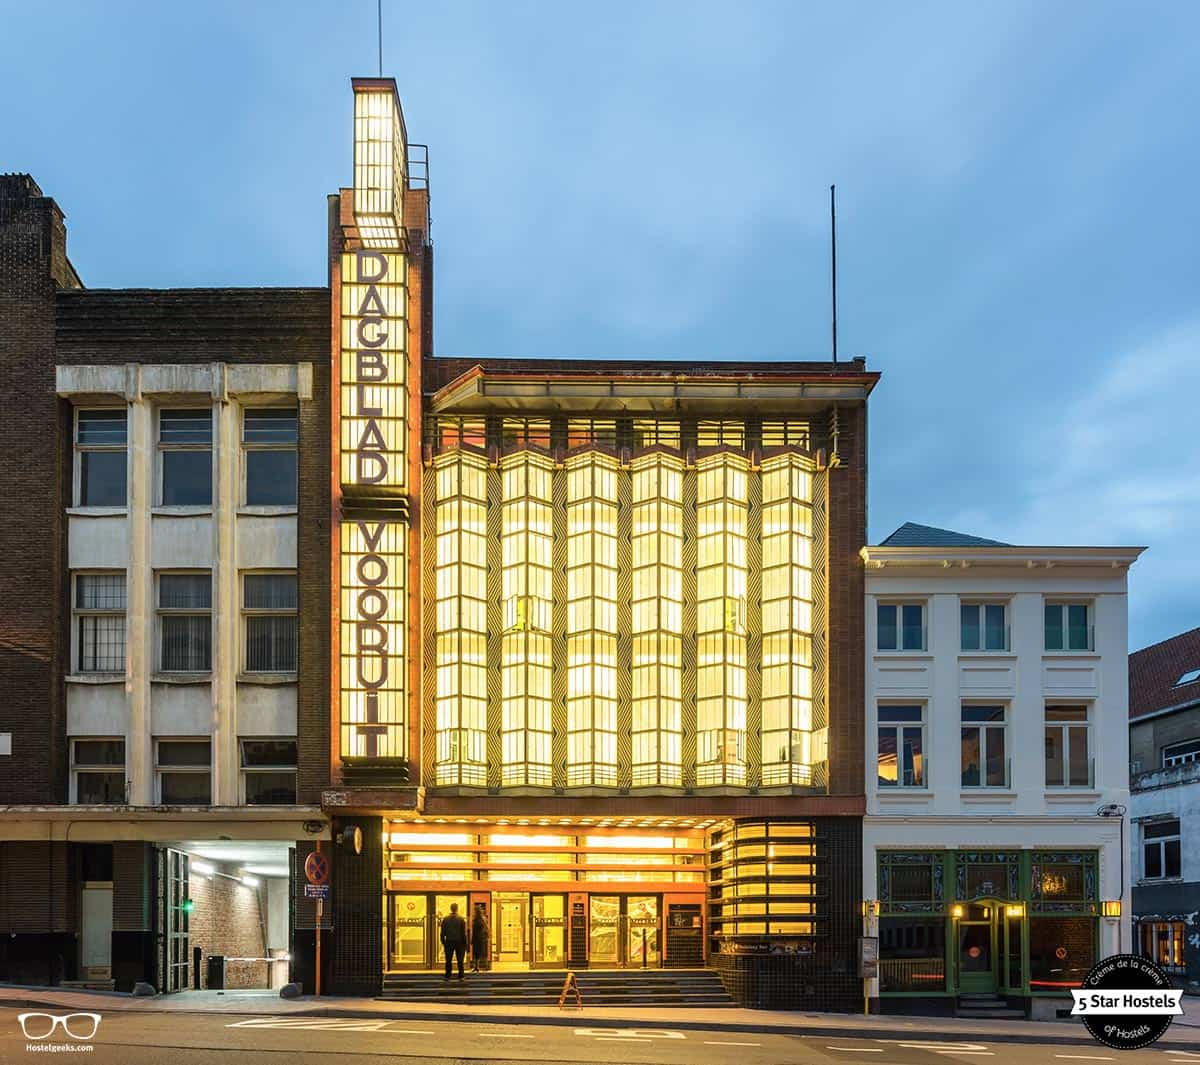 The impressive building of Backstay Hostel in Ghent